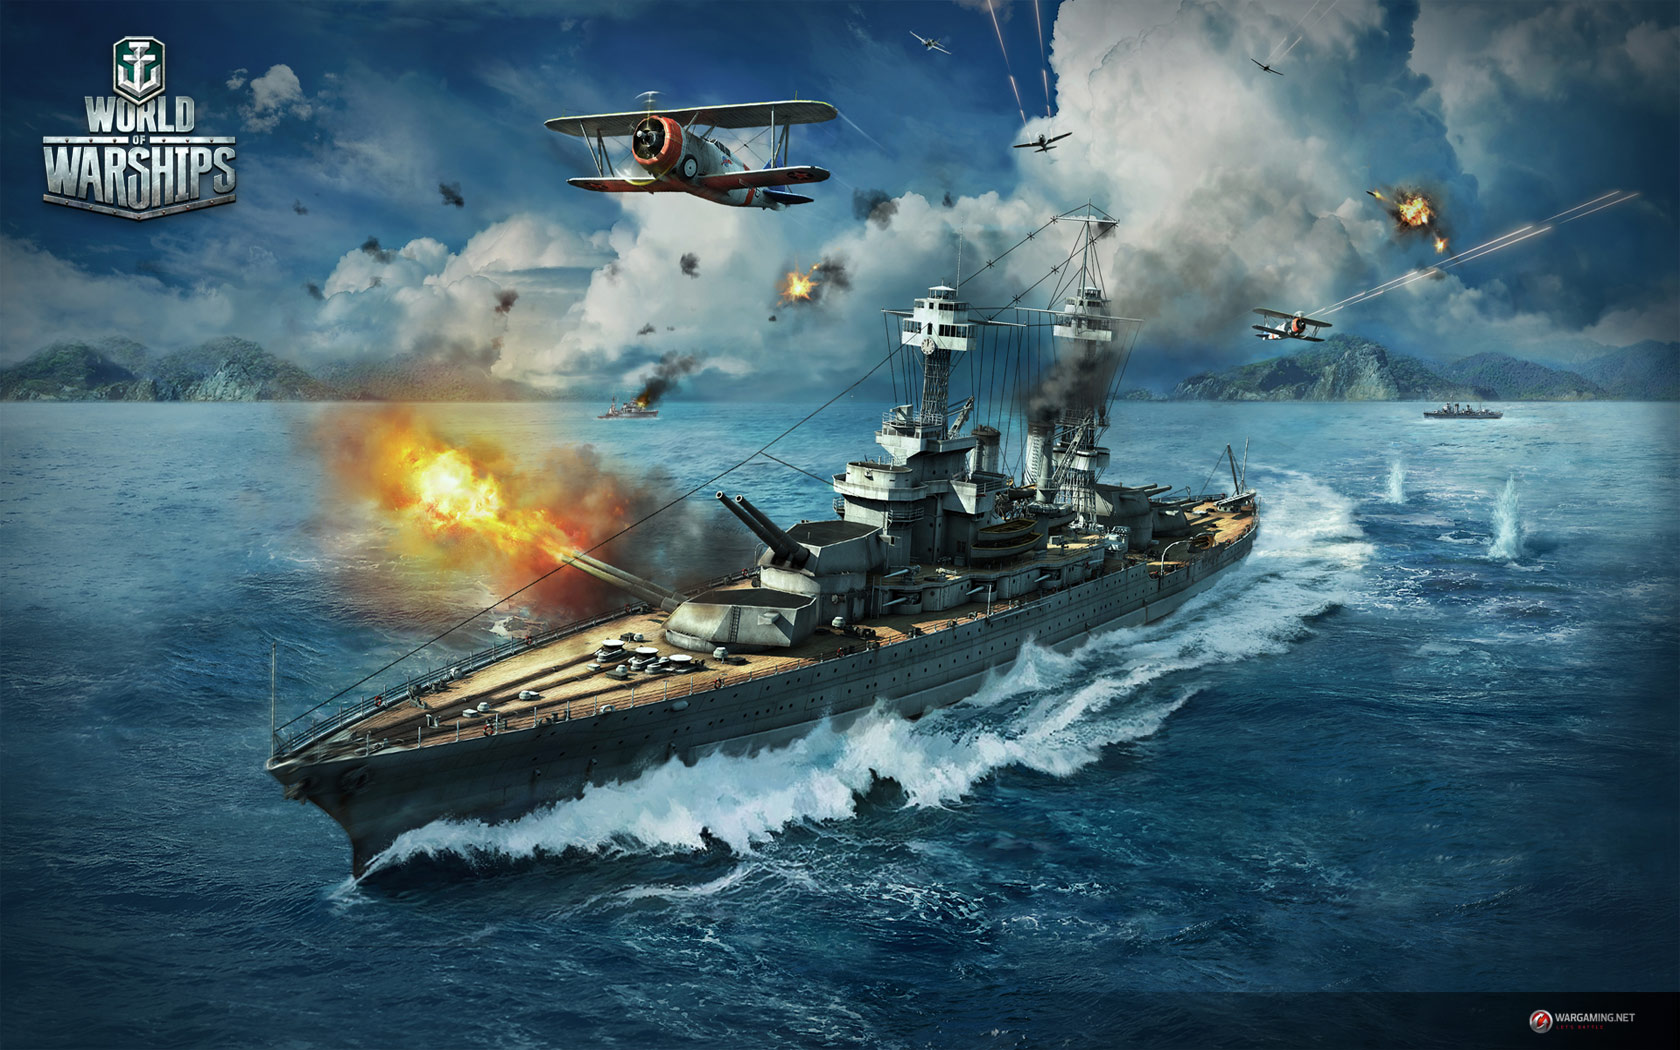 World of Warships Update 0.6.1